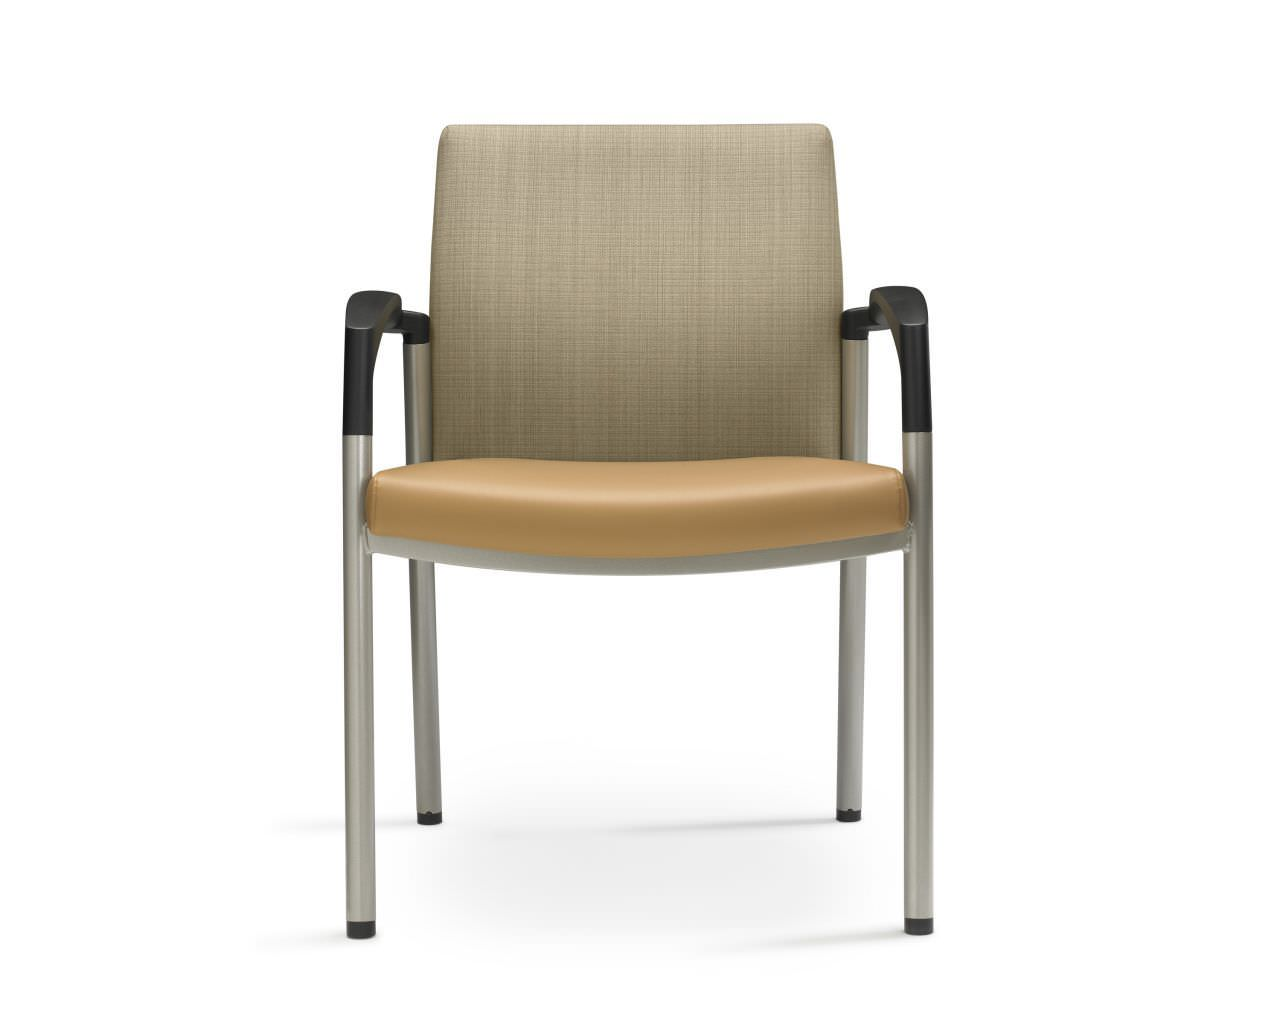 Waiting Room Chair waiting room chair / with armrests - valor - nemschoff